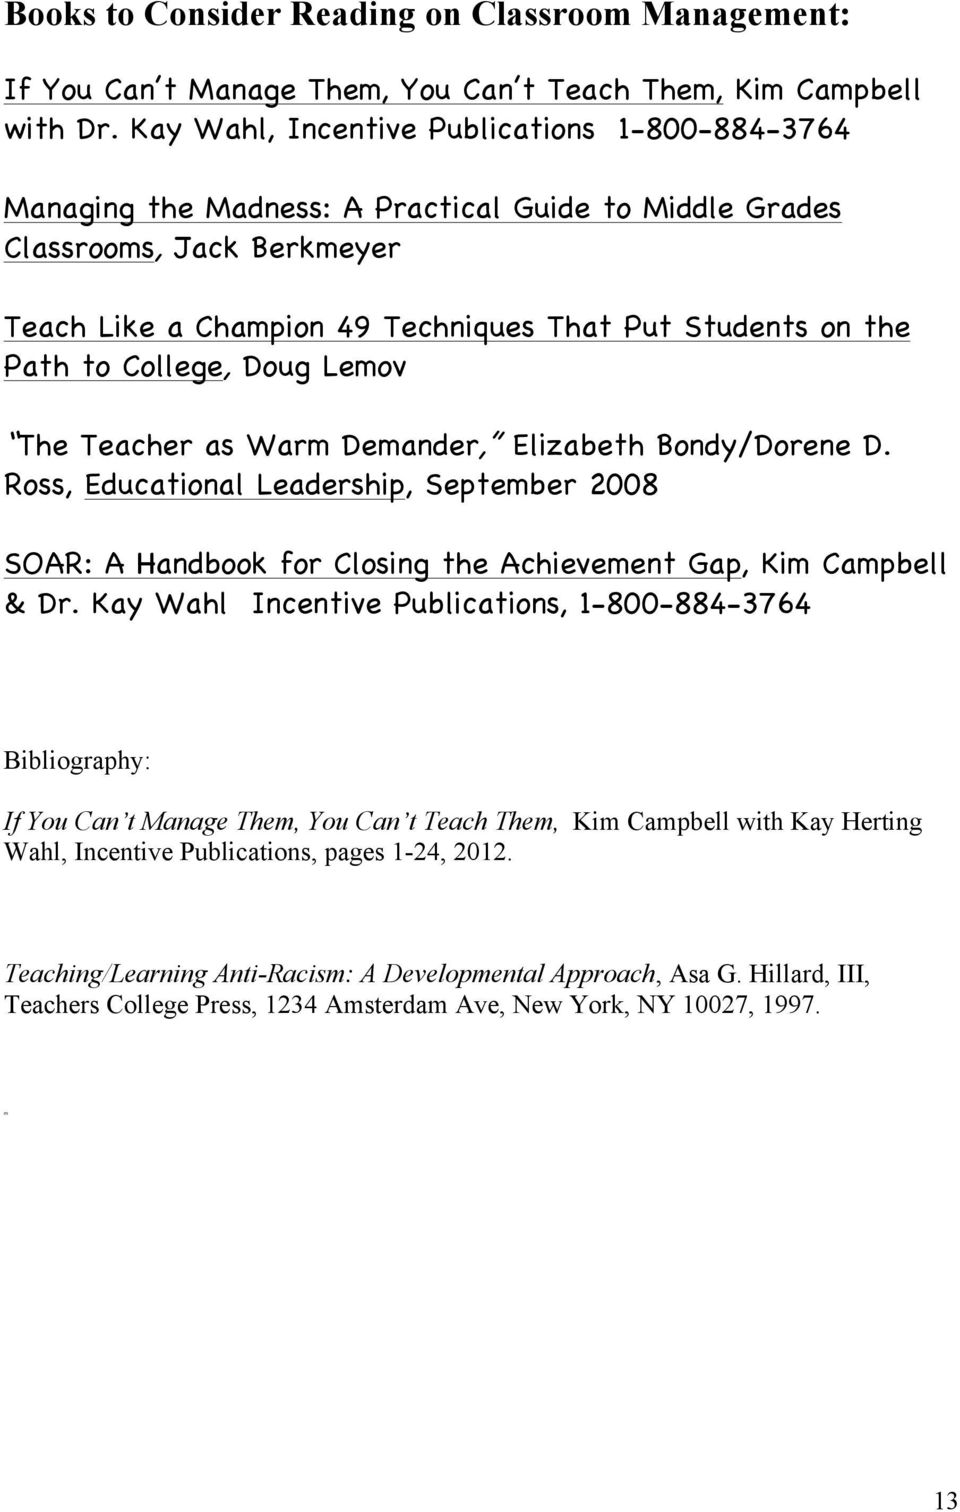 to College, Doug Lemov The Teacher as Warm Demander, Elizabeth Bondy/Dorene D. Ross, Educational Leadership, September 2008 SOAR: A Handbook for Closing the Achievement Gap, Kim Campbell & Dr.